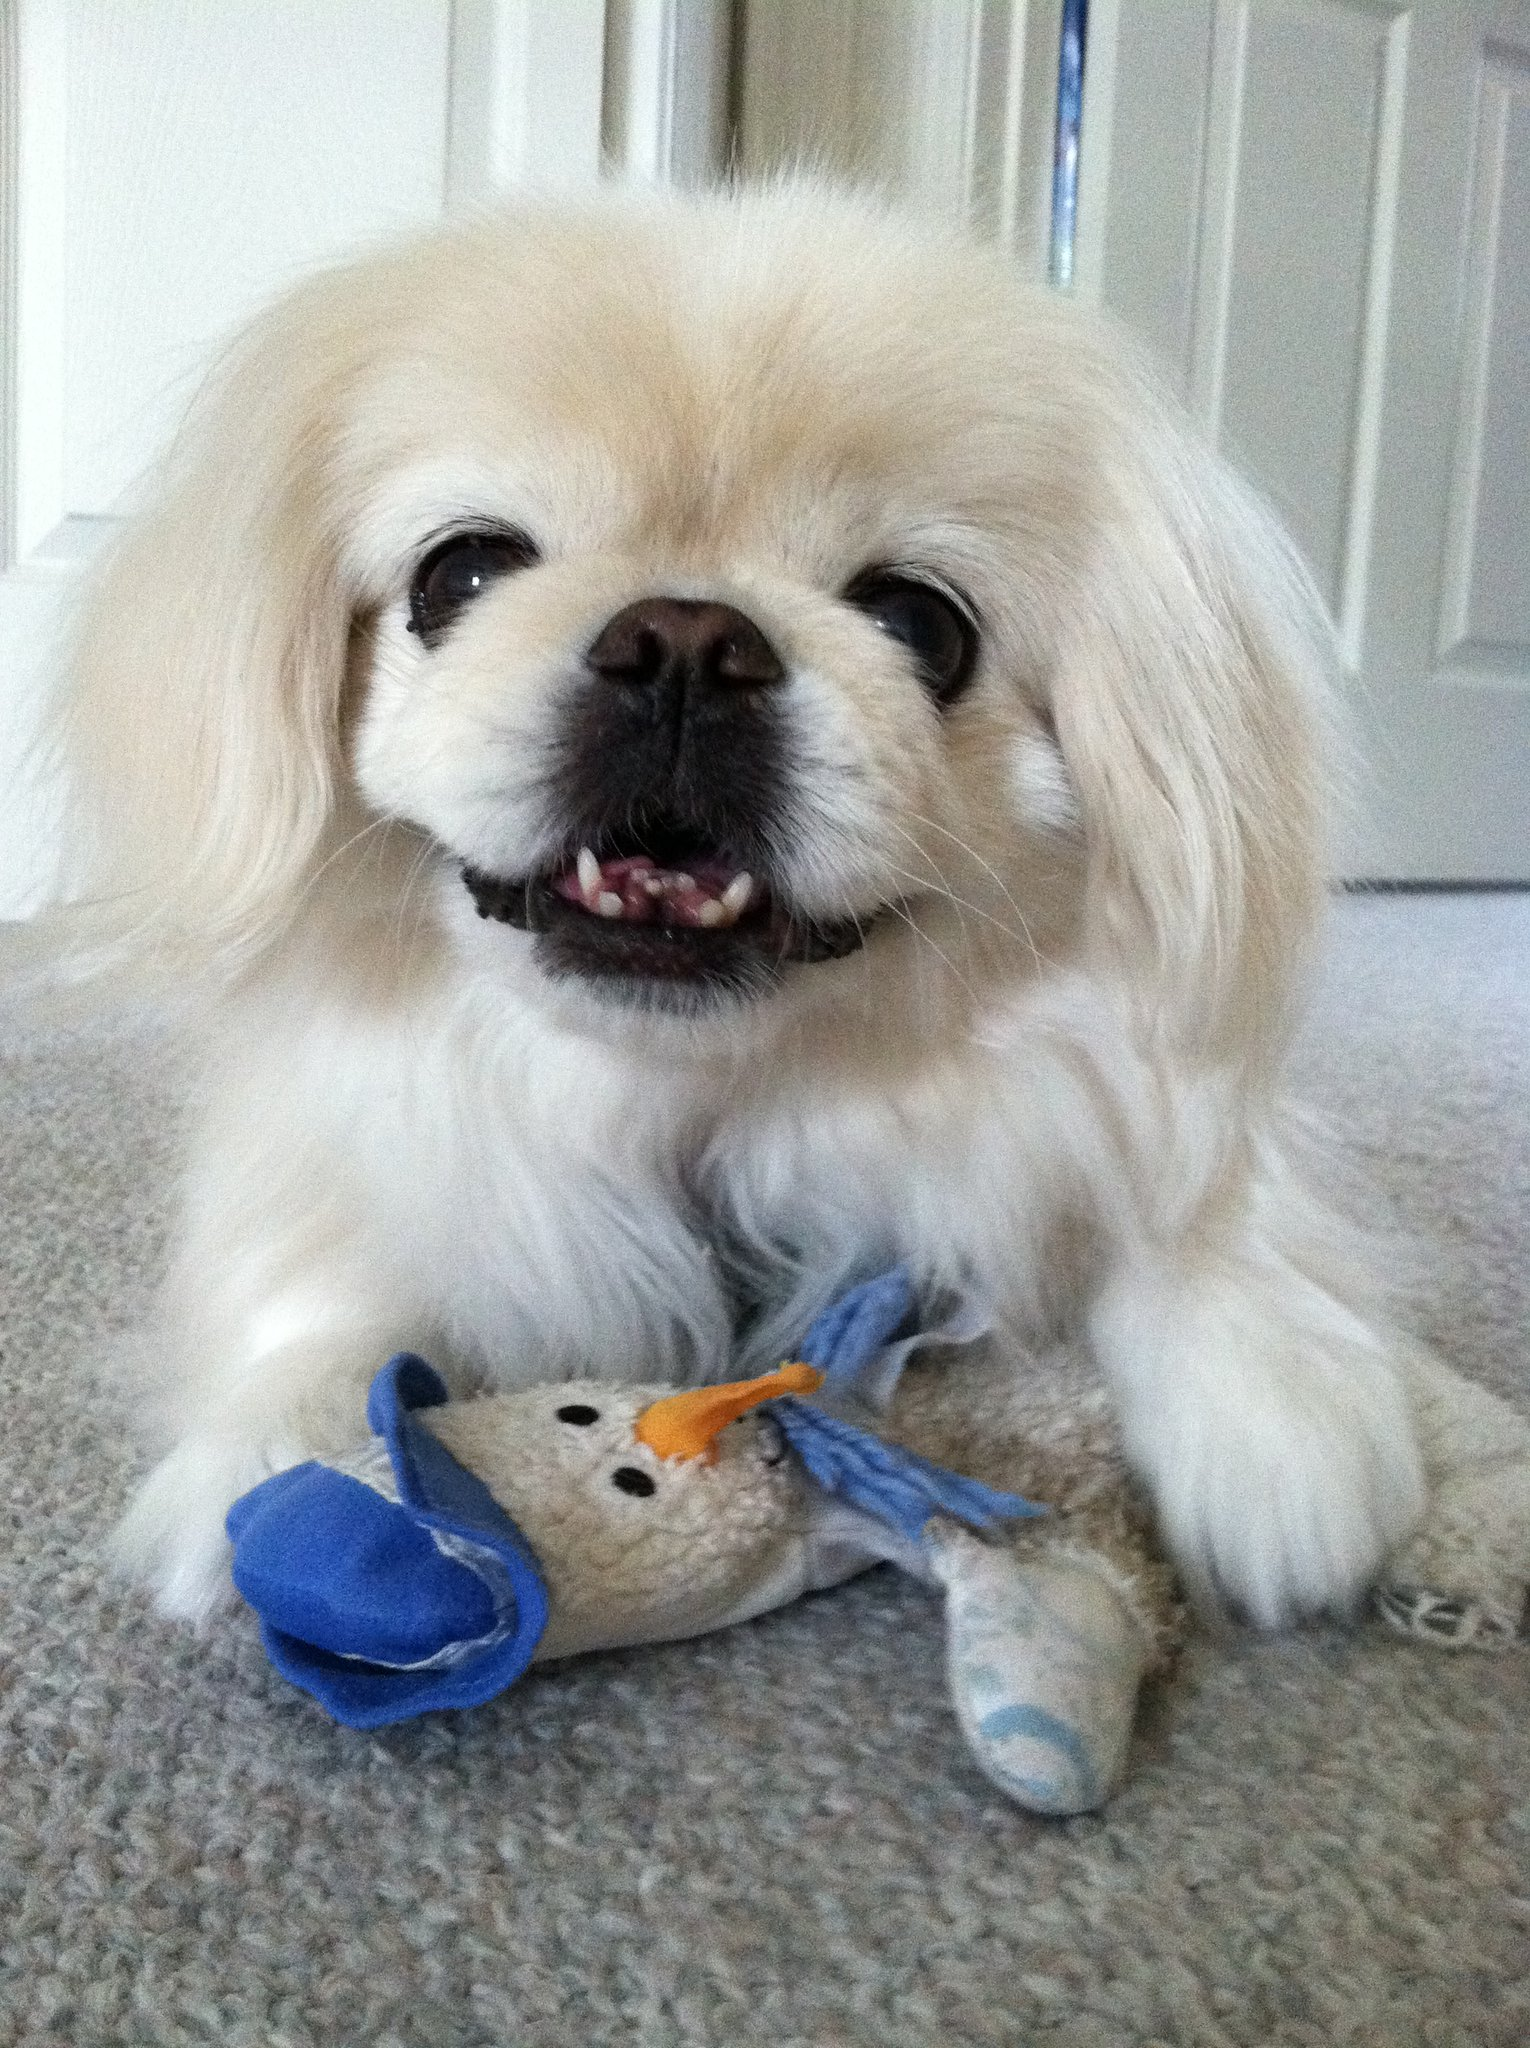 File:Happy Pekingese Wanting to Play.jpg - Wikimedia Commons